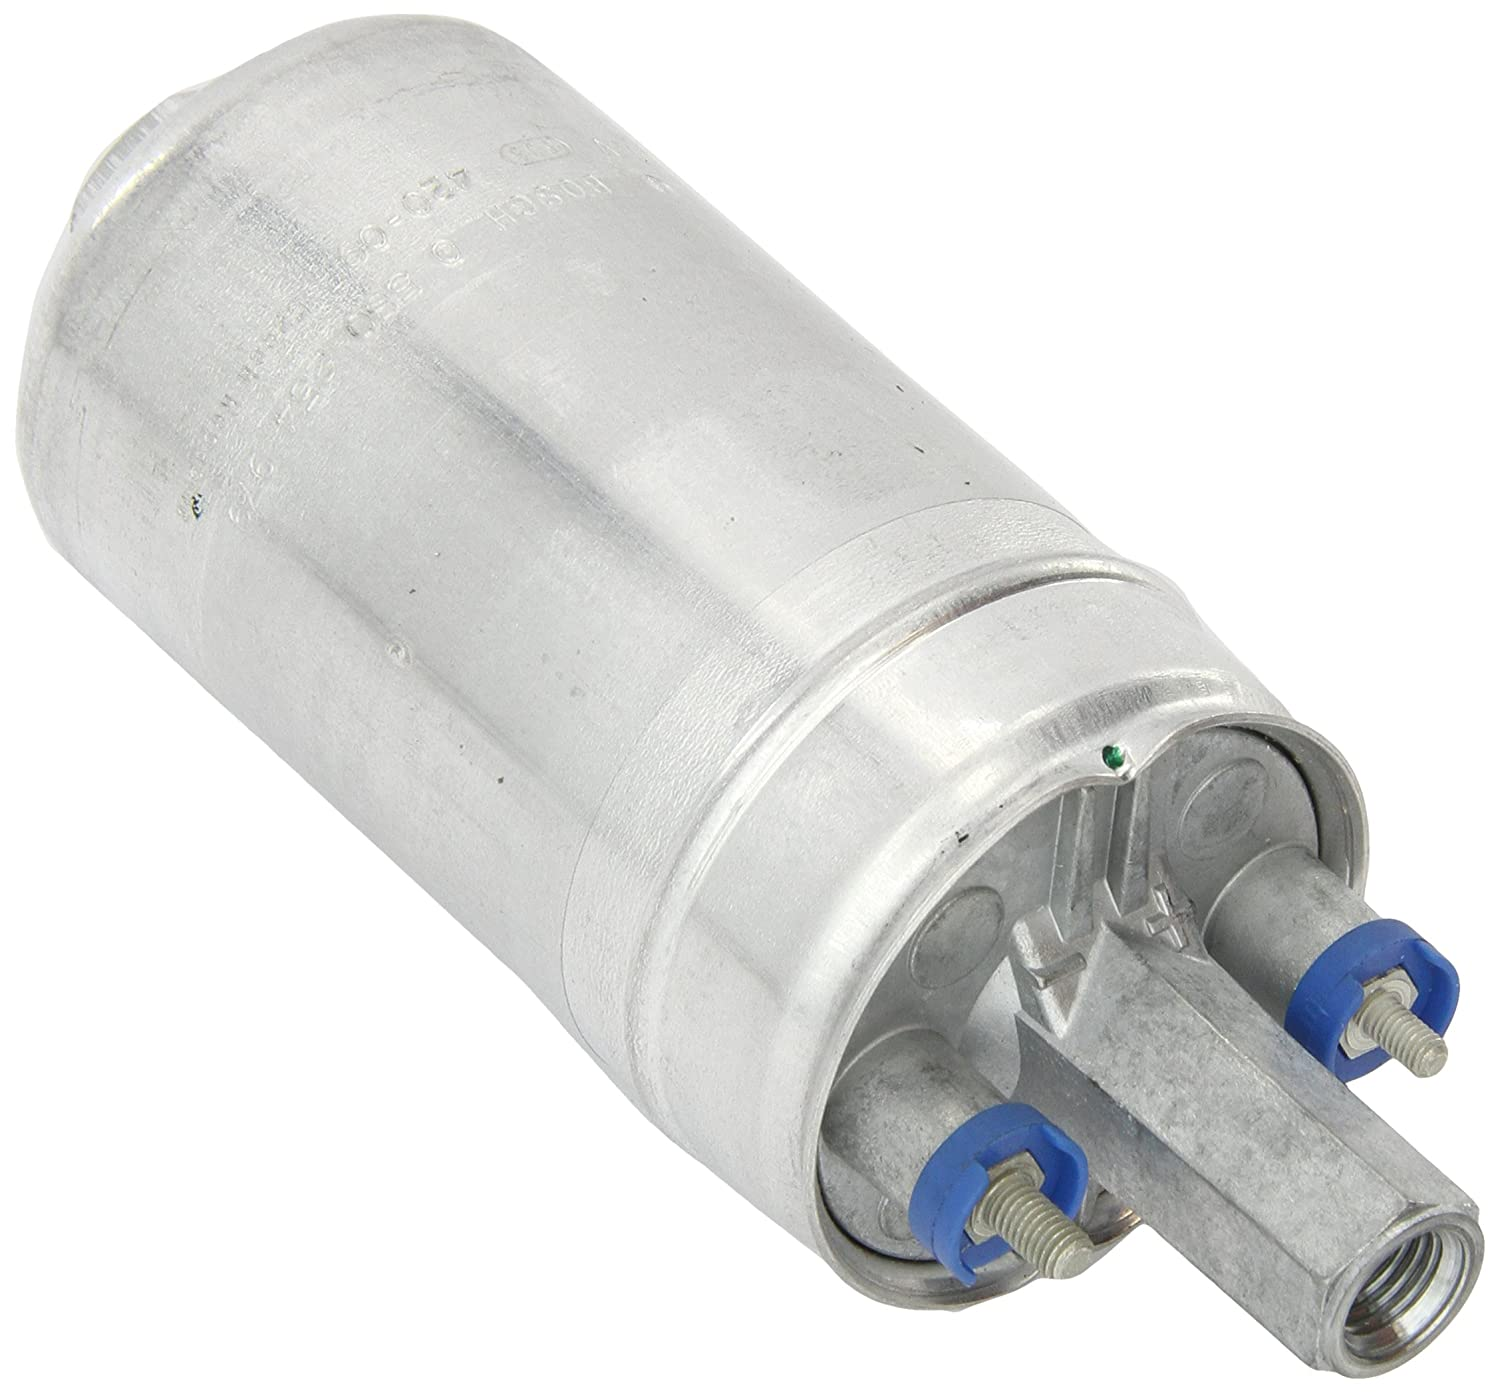 Bosch 0580254979 Electric Fuel Pump Robert Bosch GmbH Automotive Aftermarket